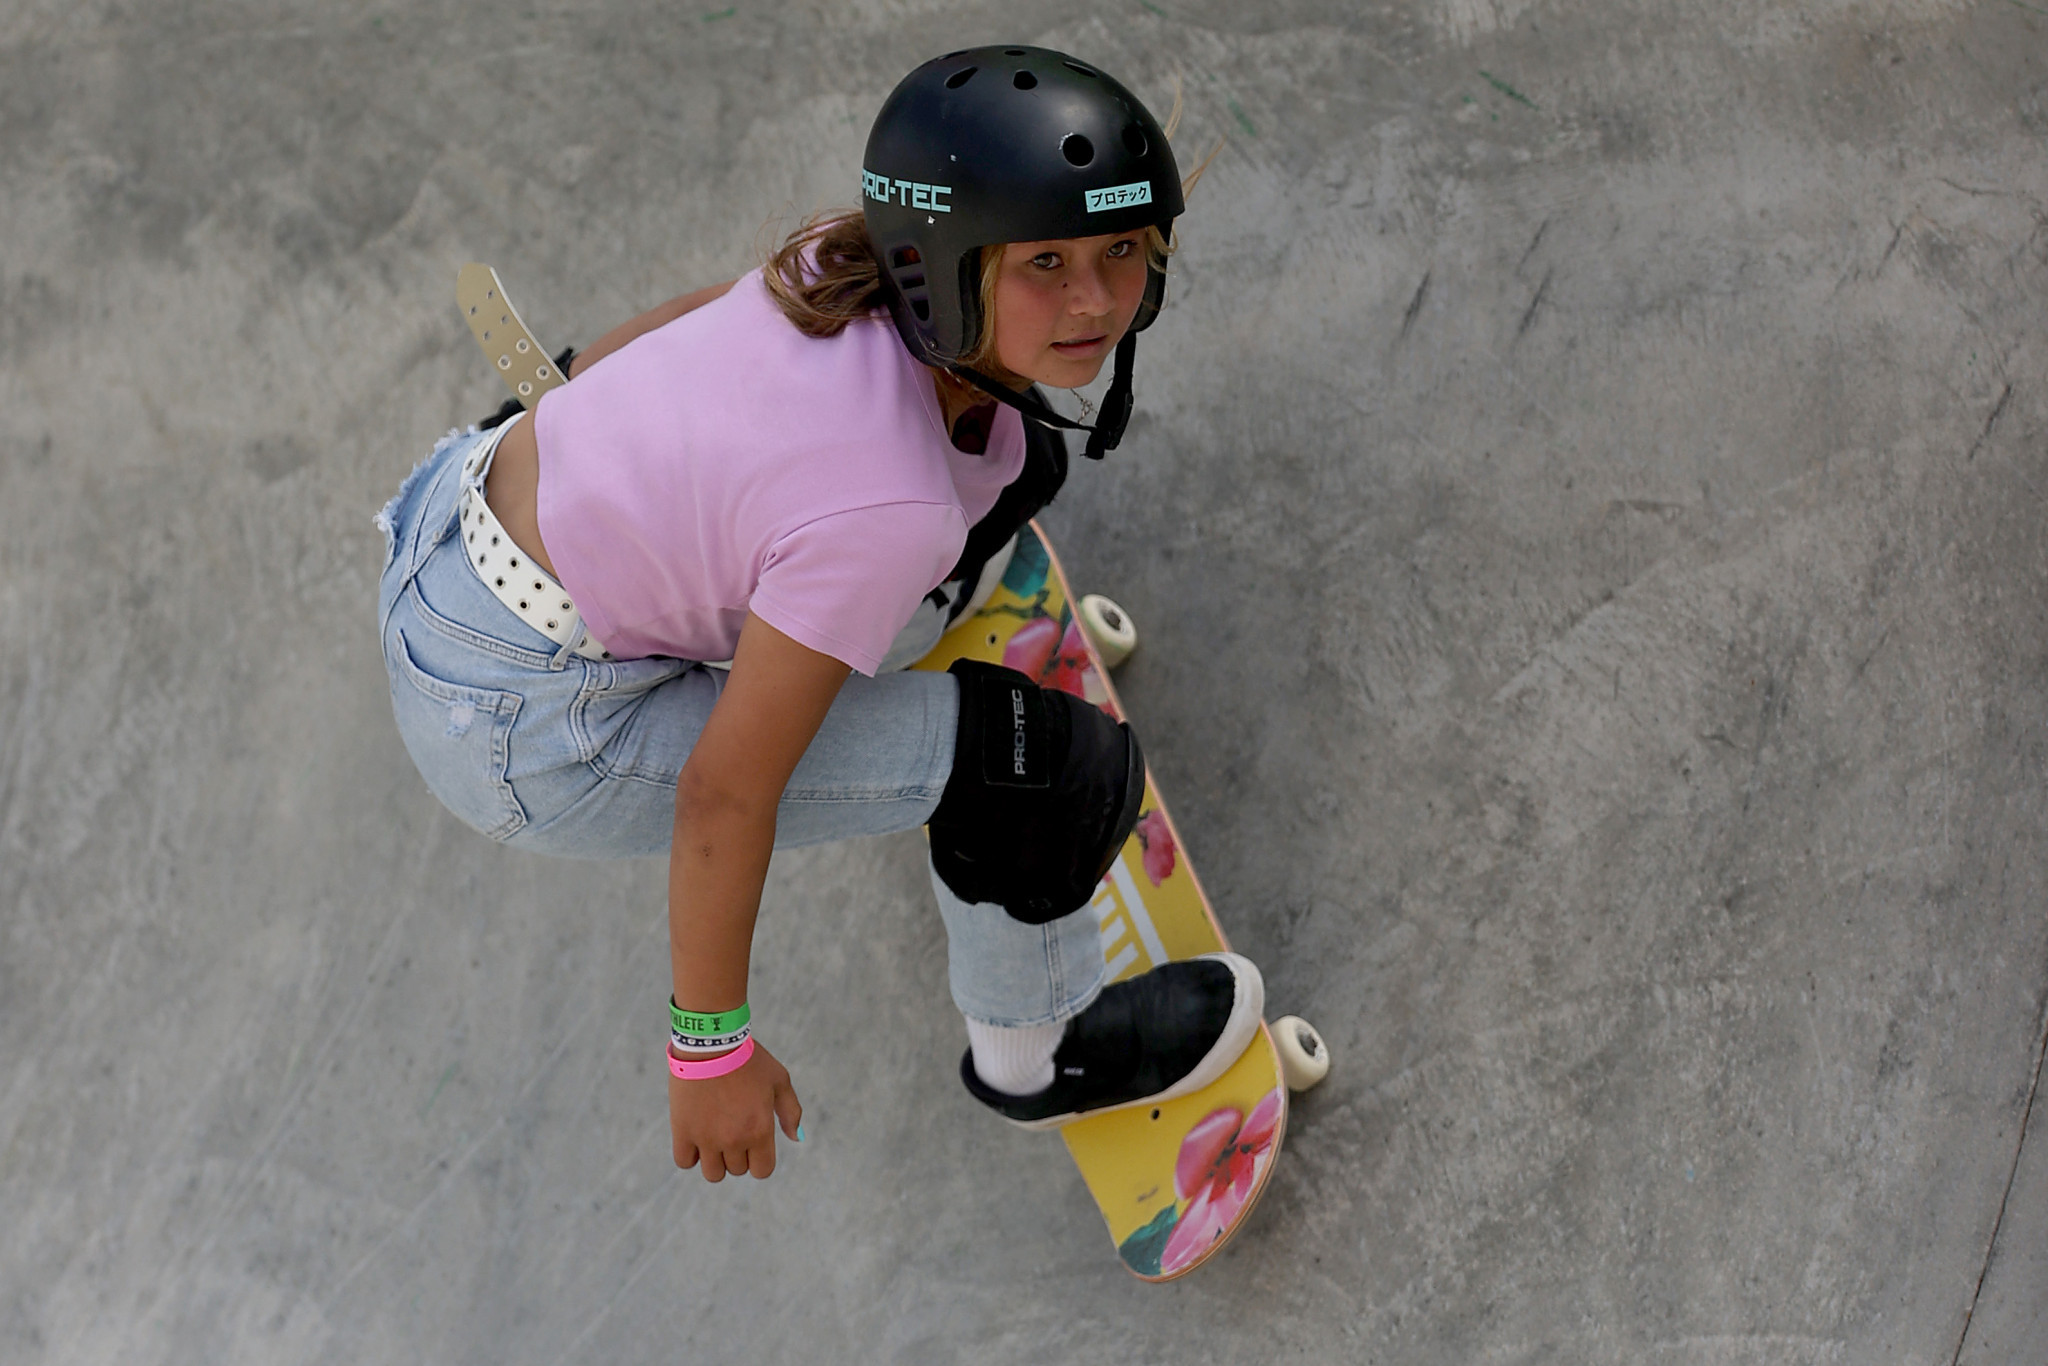 Skateboarder Brown to become Britain's youngest-ever Summer Olympian at Tokyo 2020